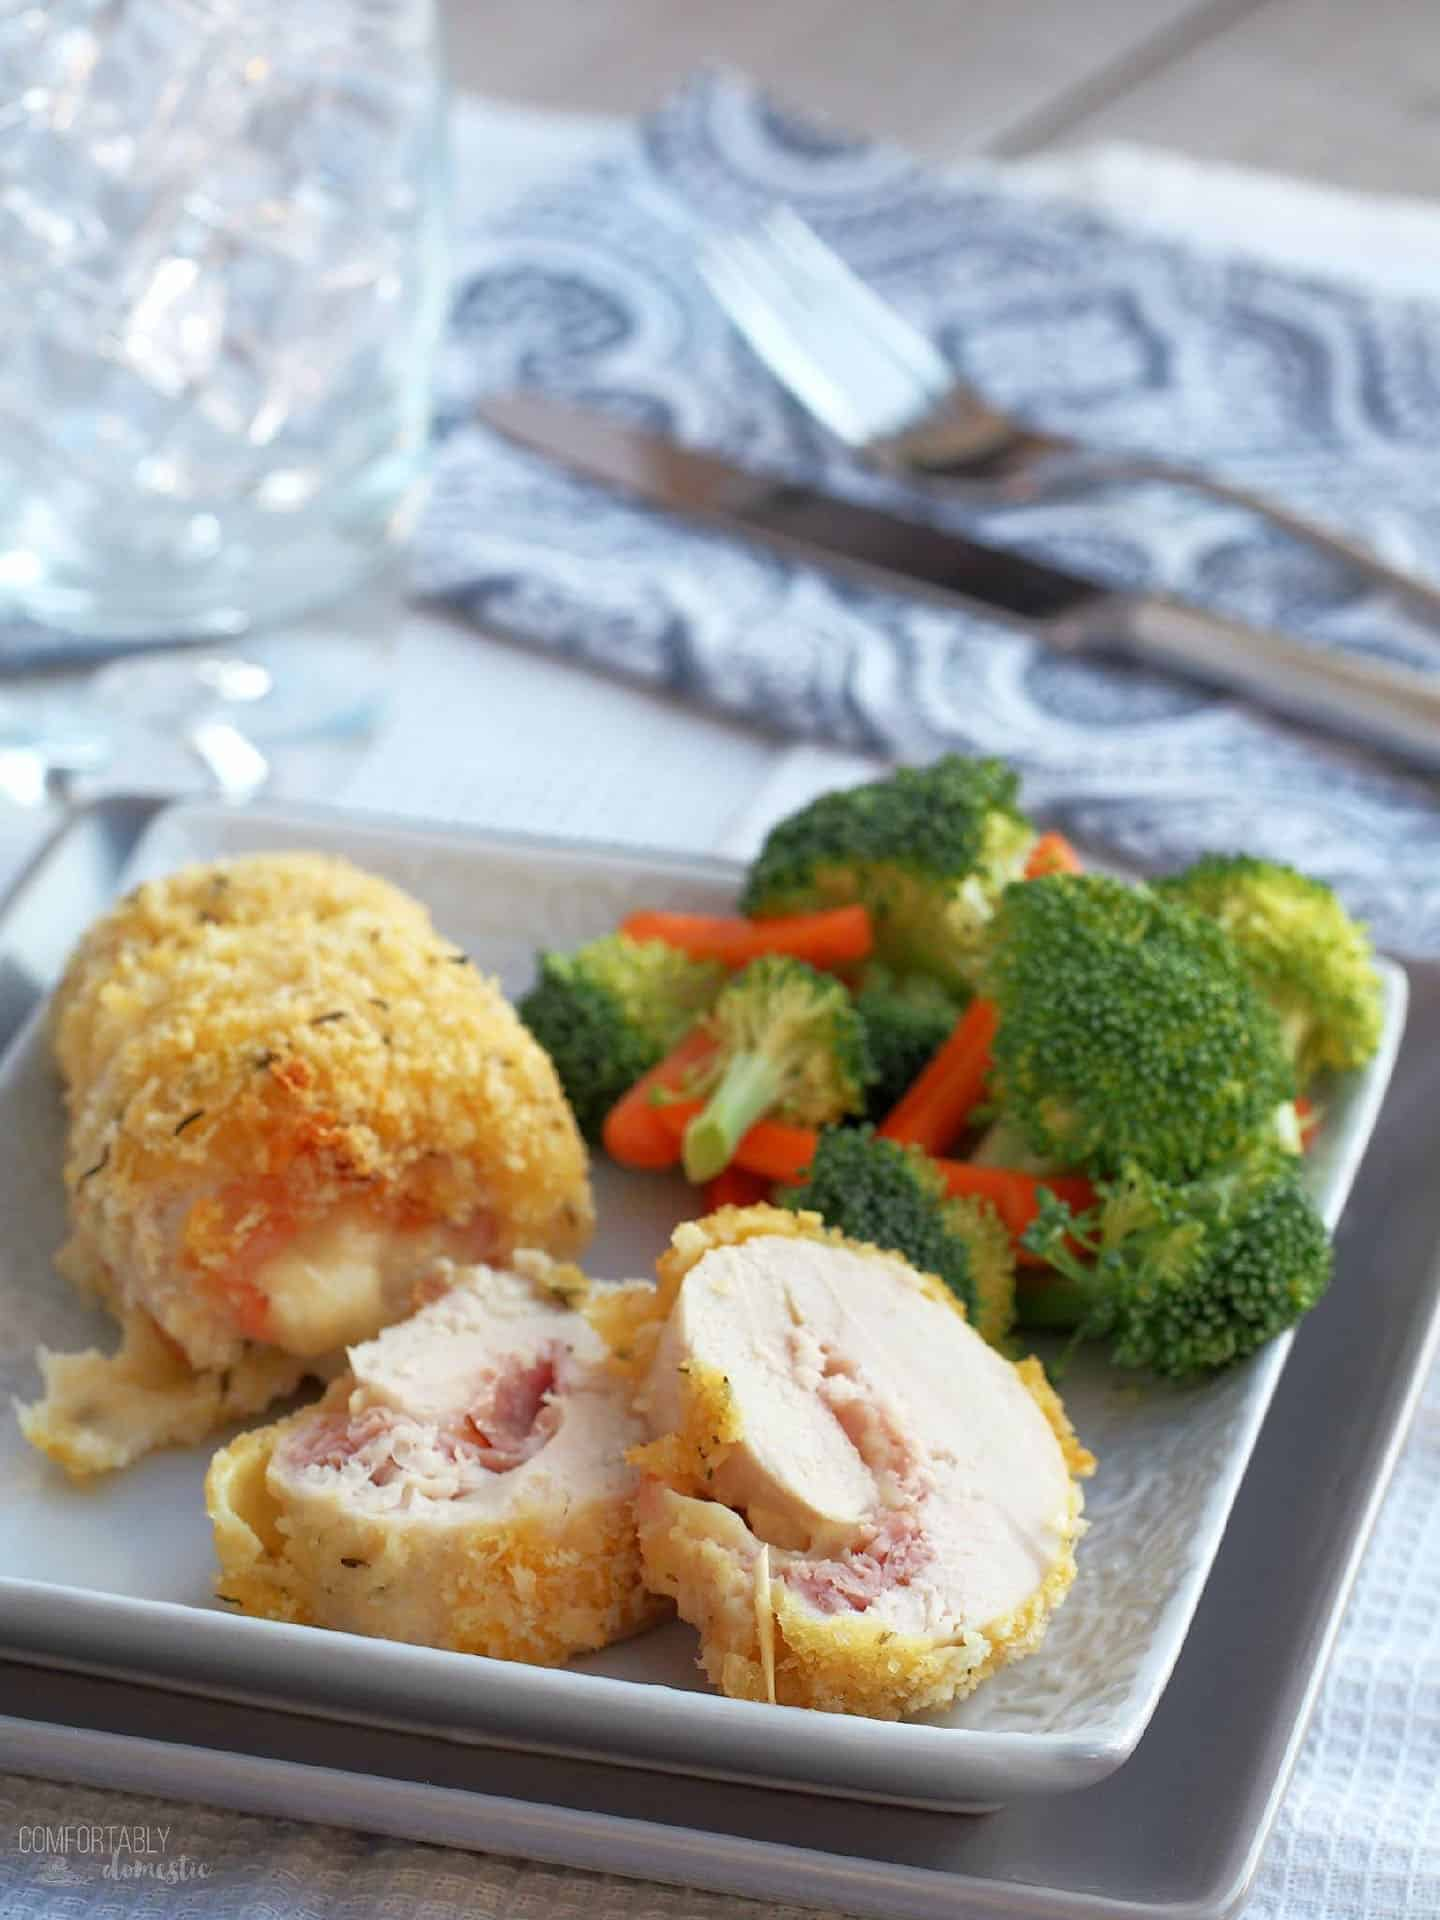 Sliced Chicken Cordon Bleu sits on a plate with steamed veggies